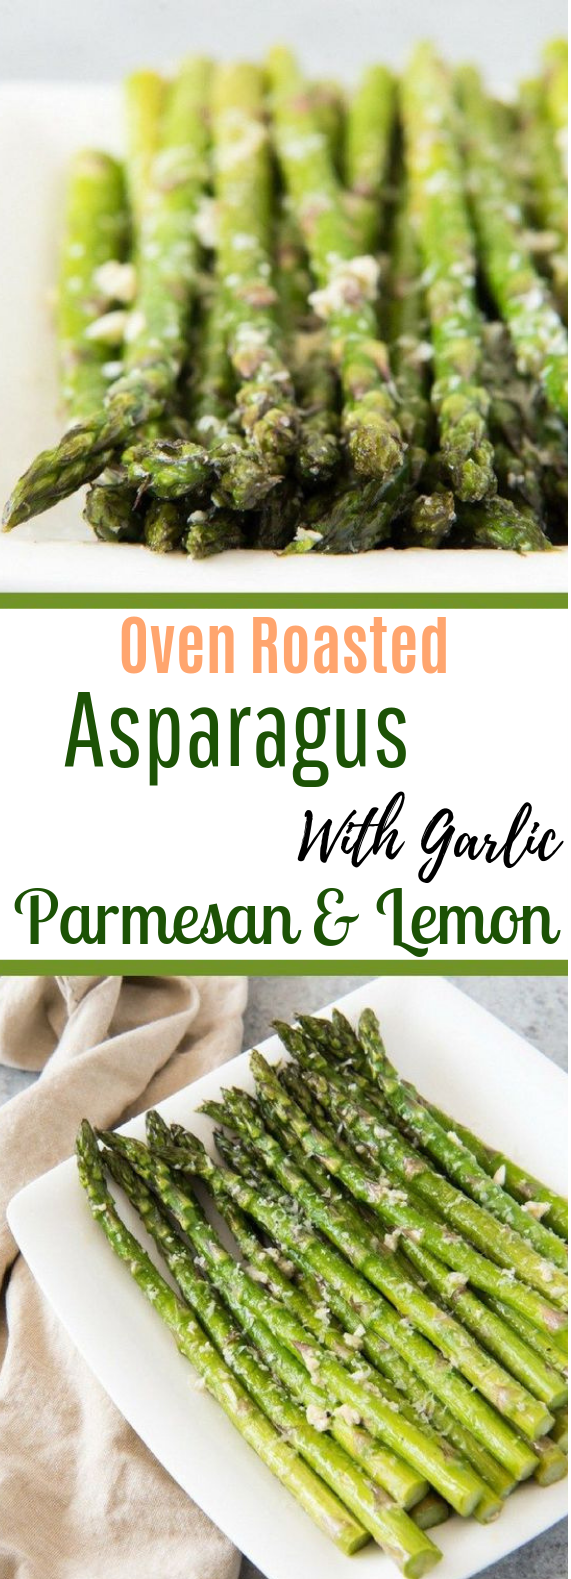 Oven Roasted Asparagus with Garlic, Parmesan & Lemon #healthy #vegetarian